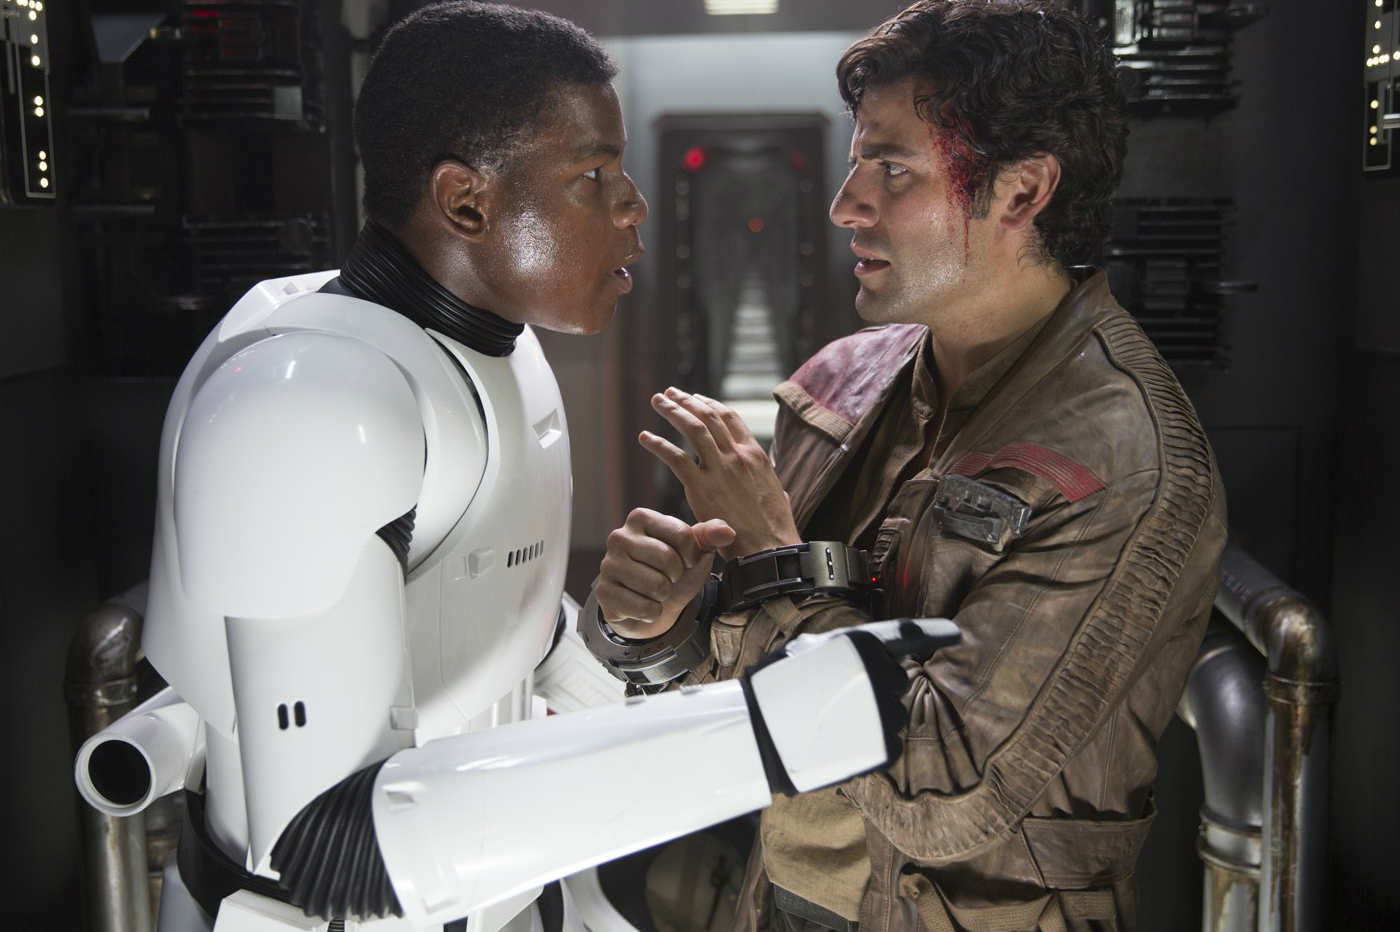 J.J. Abrams Confirms Star Wars Will Feature Gay Characters